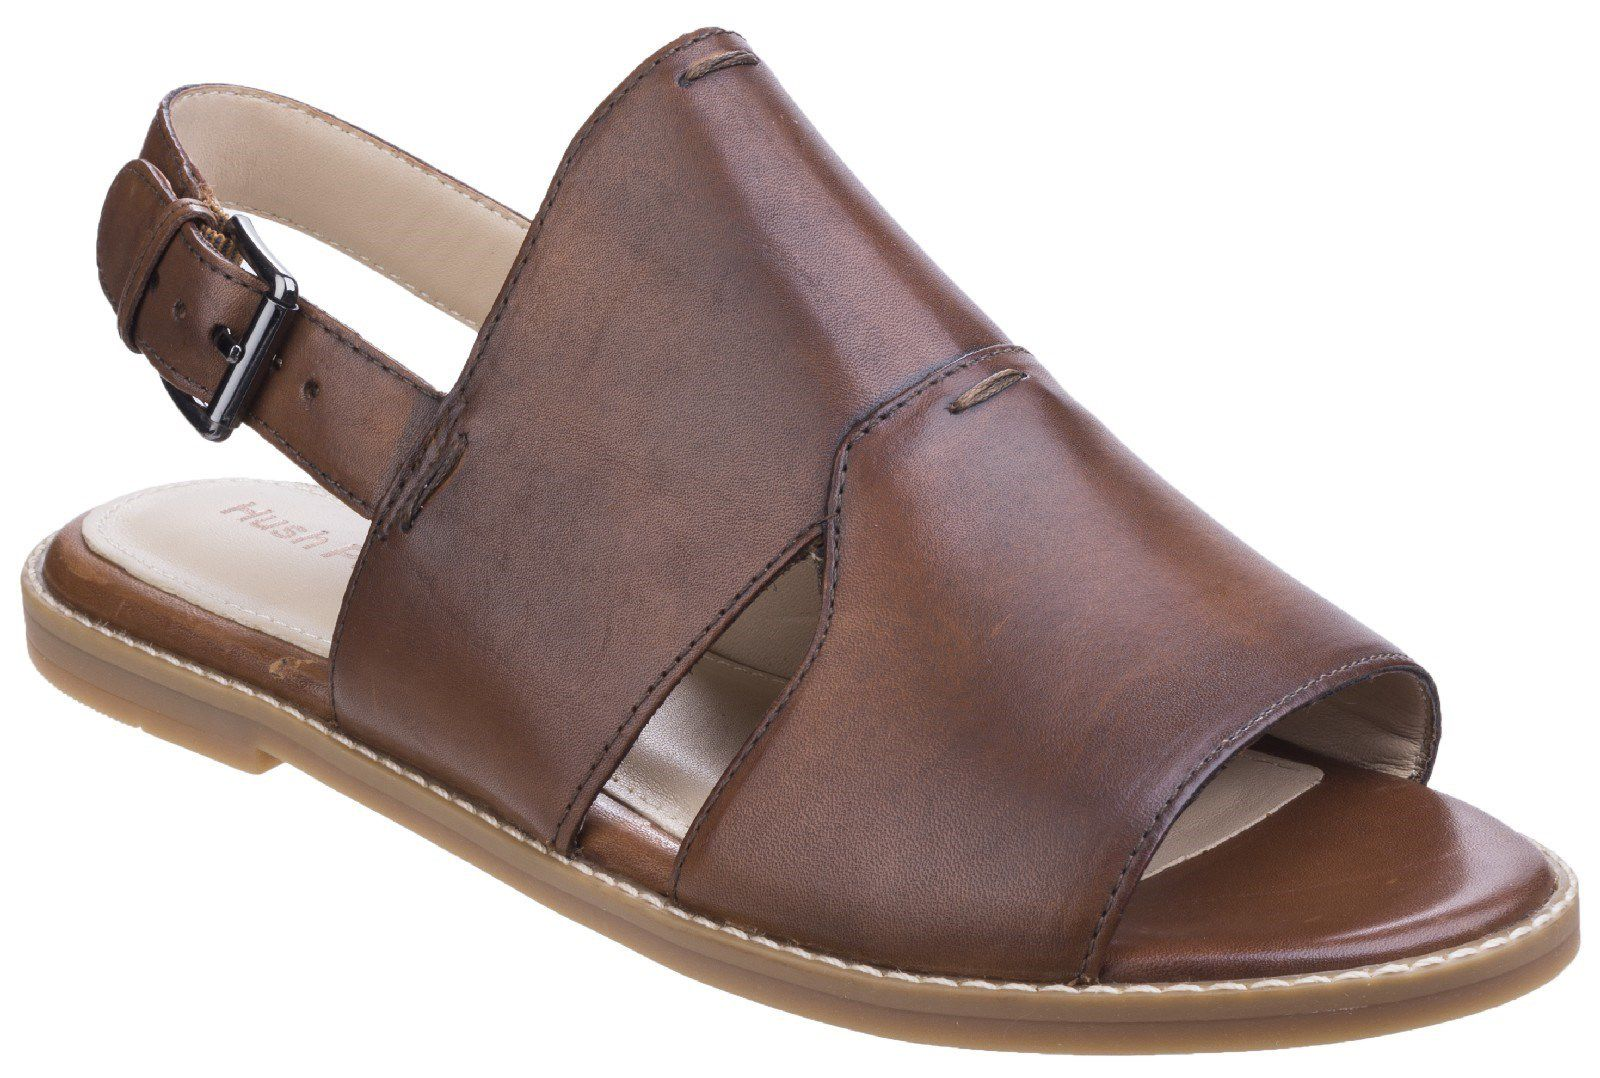 Hush Puppies Adiron chrissie buckle sandals Tan